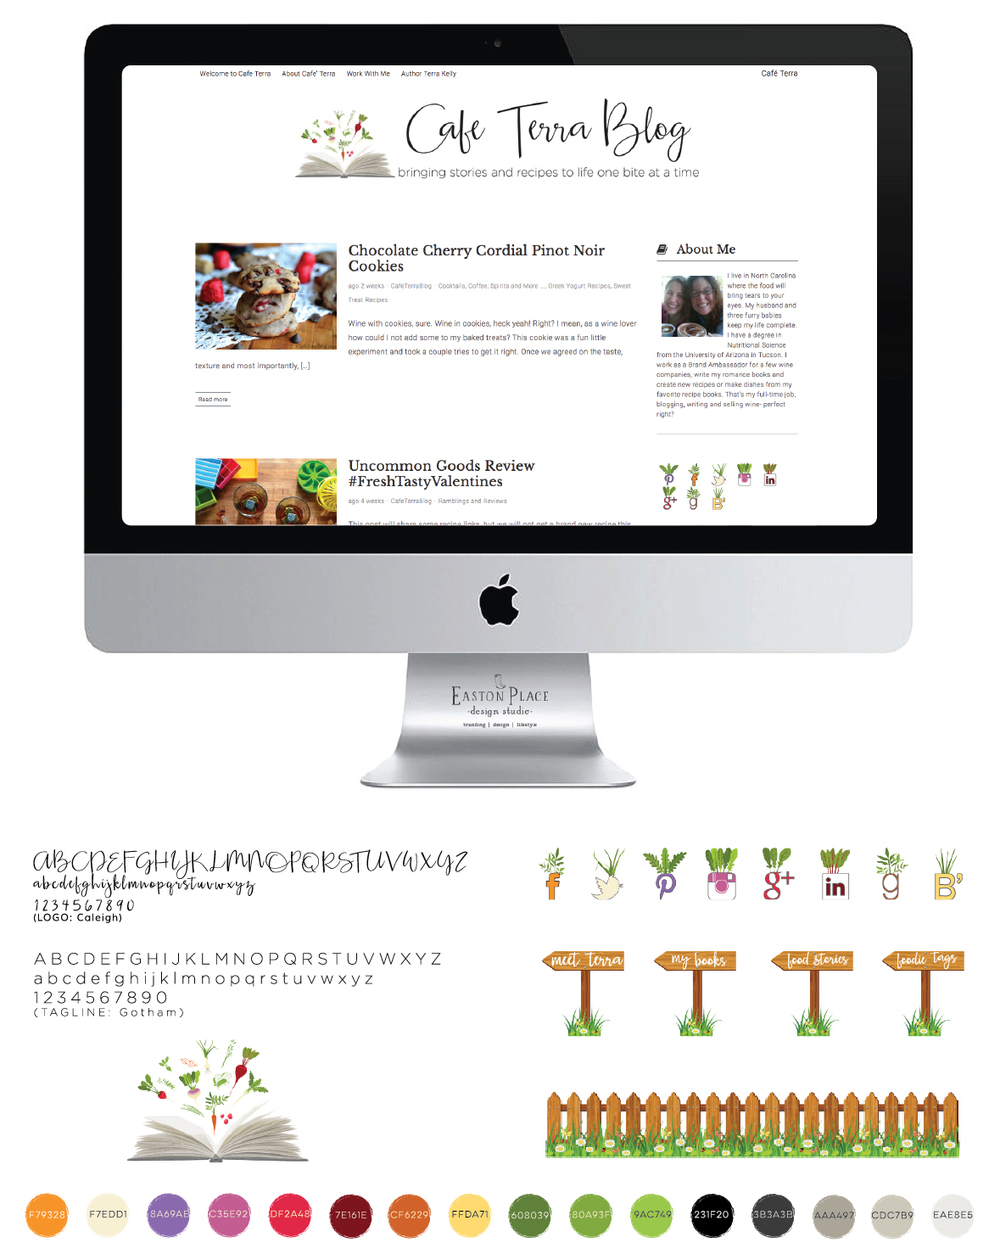 CafeTerraBlog branding by Easton Place